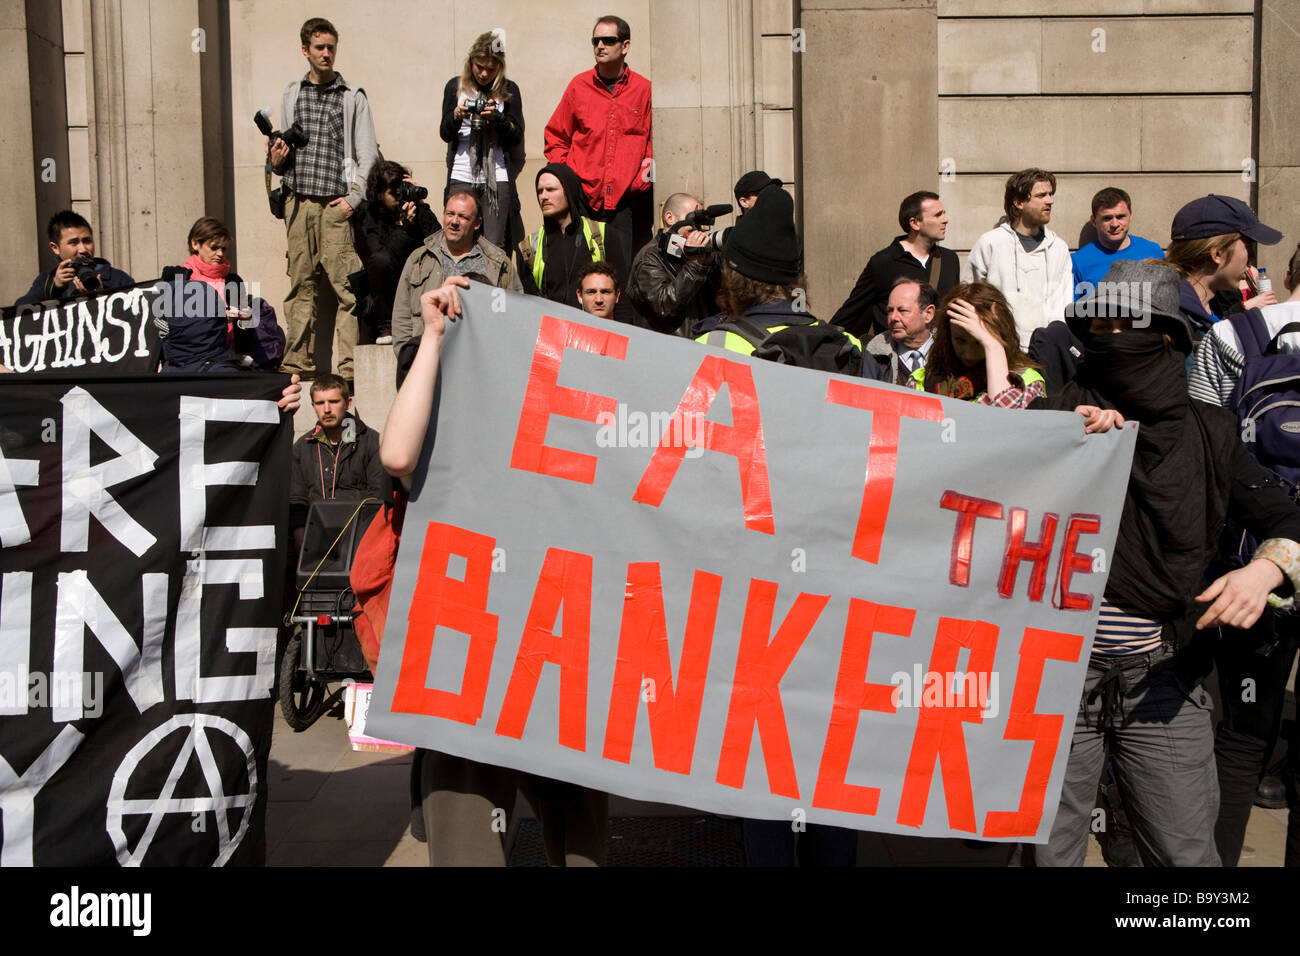 Demonstrators with :Eat The Bankers' placard, at the Bank of England protesting at the G20 summit in London. - Stock Image